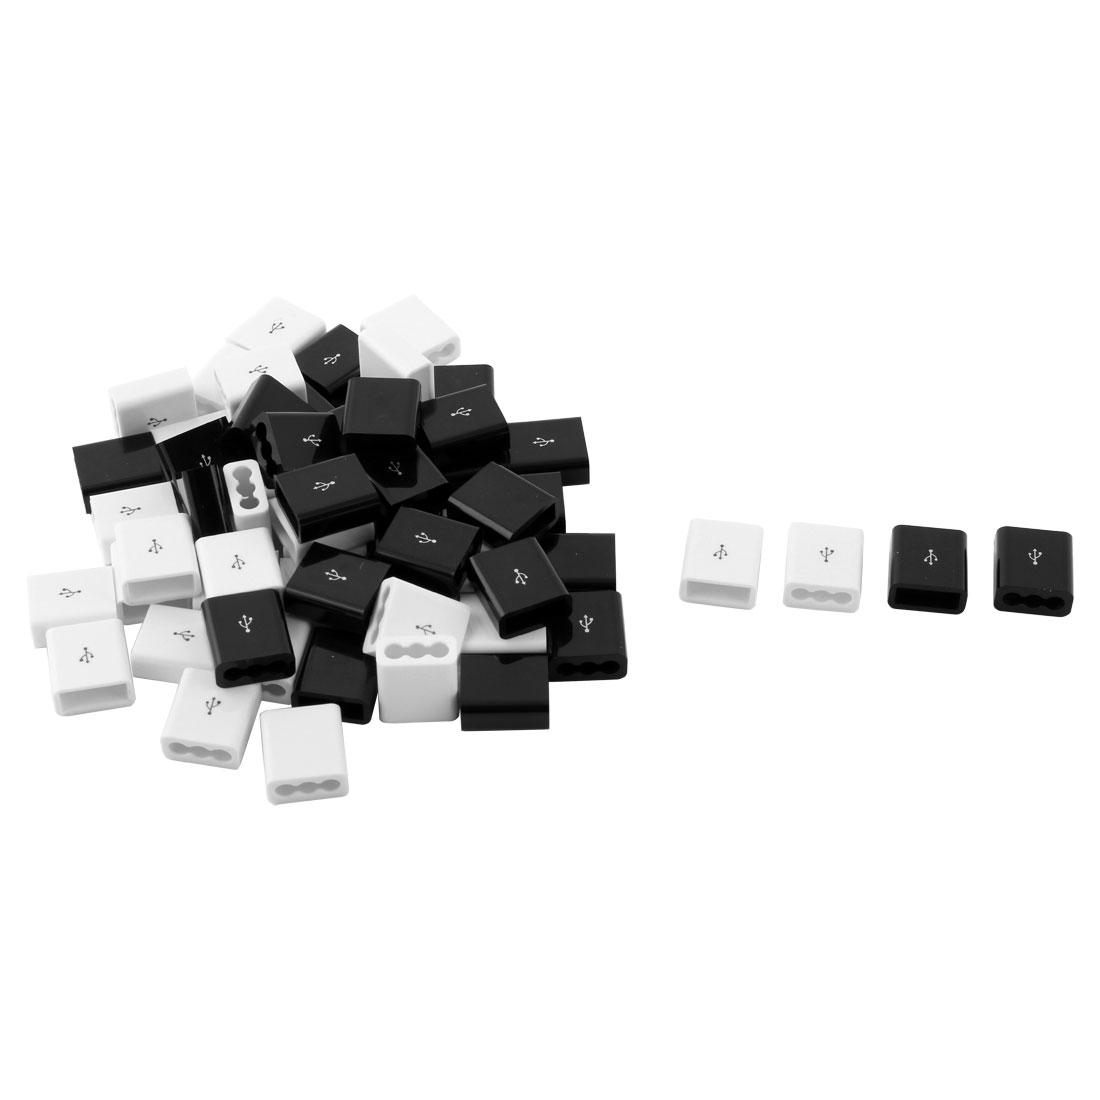 Company Plastic DIY Electrical Transfer Connector Linker USB Head Shell White Black 60pcs